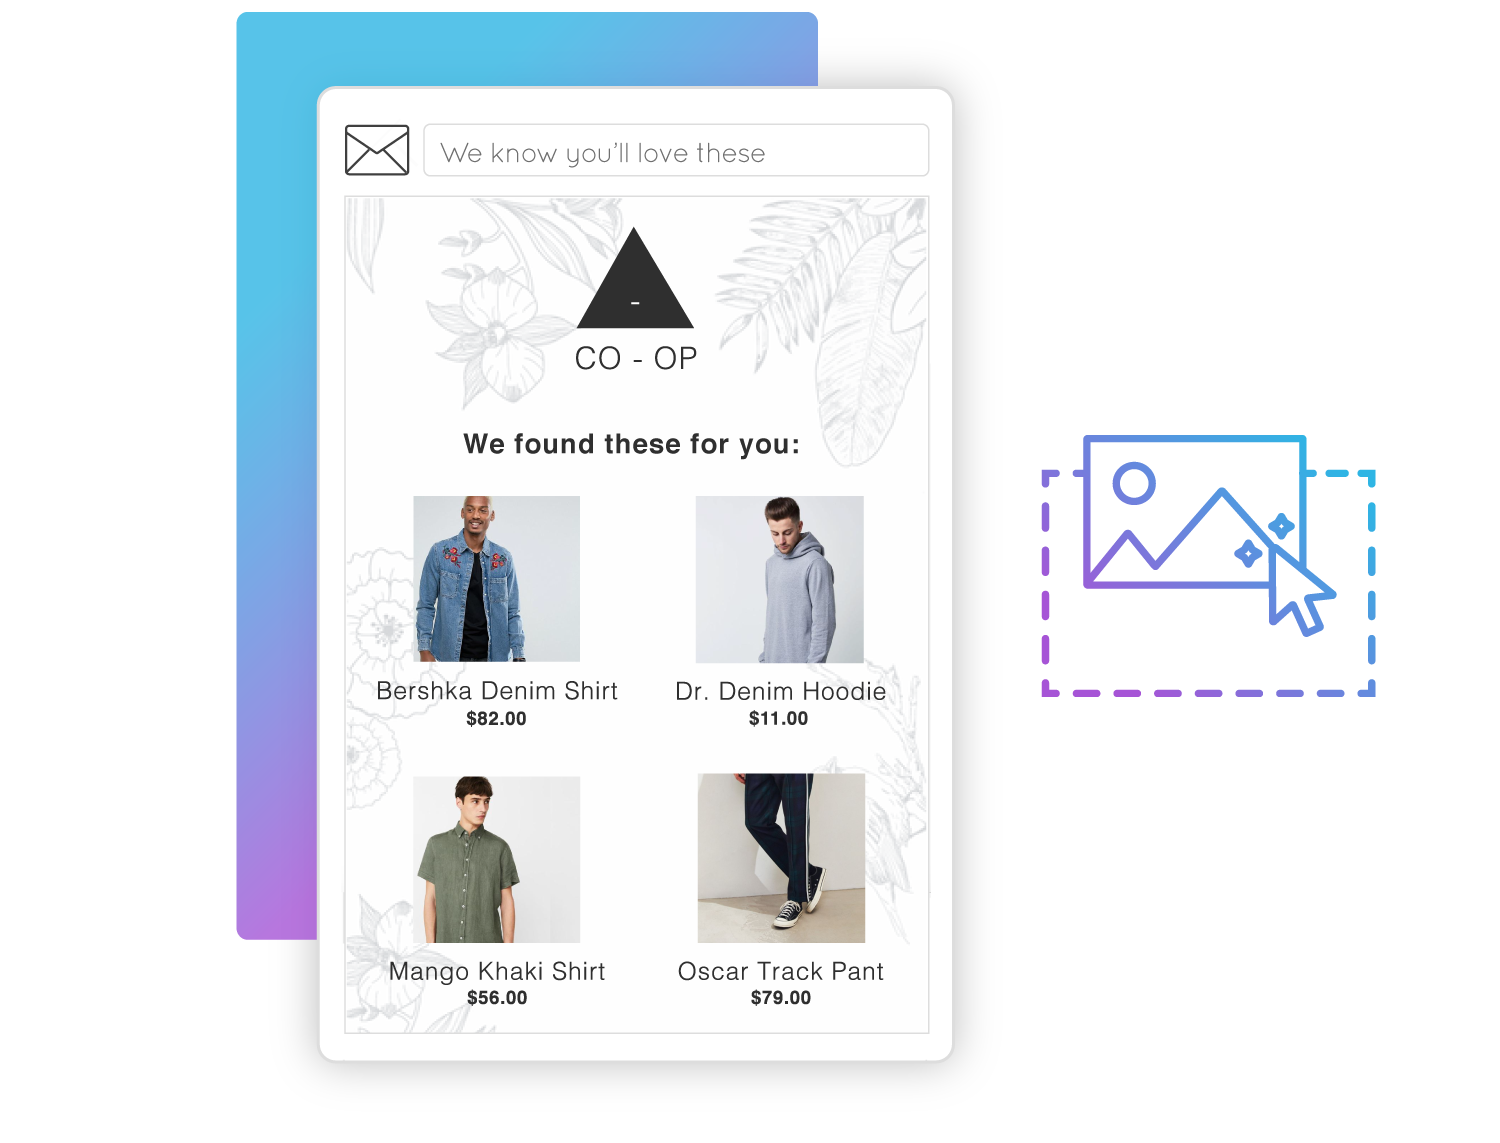 Marsello retail eCommerce loyalty rewards program marketing for Shopify mobile optimized for multi-device